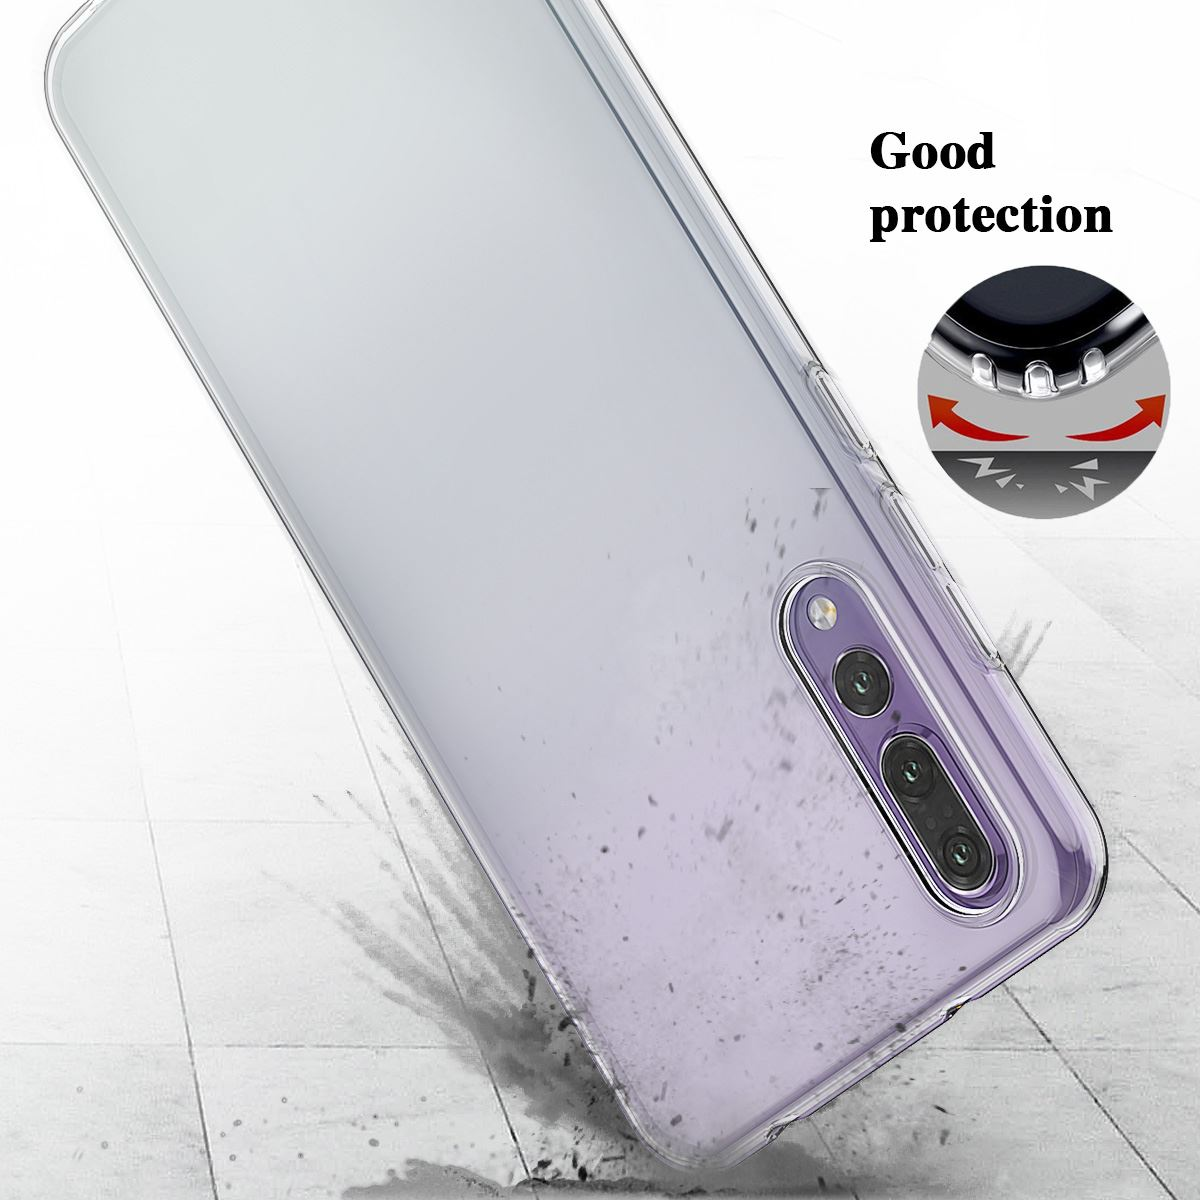 Shockproof-Silicone-Protective-Clear-Gel-Cover-Case-For-Huawei-P20-Pro-P-Smart thumbnail 22